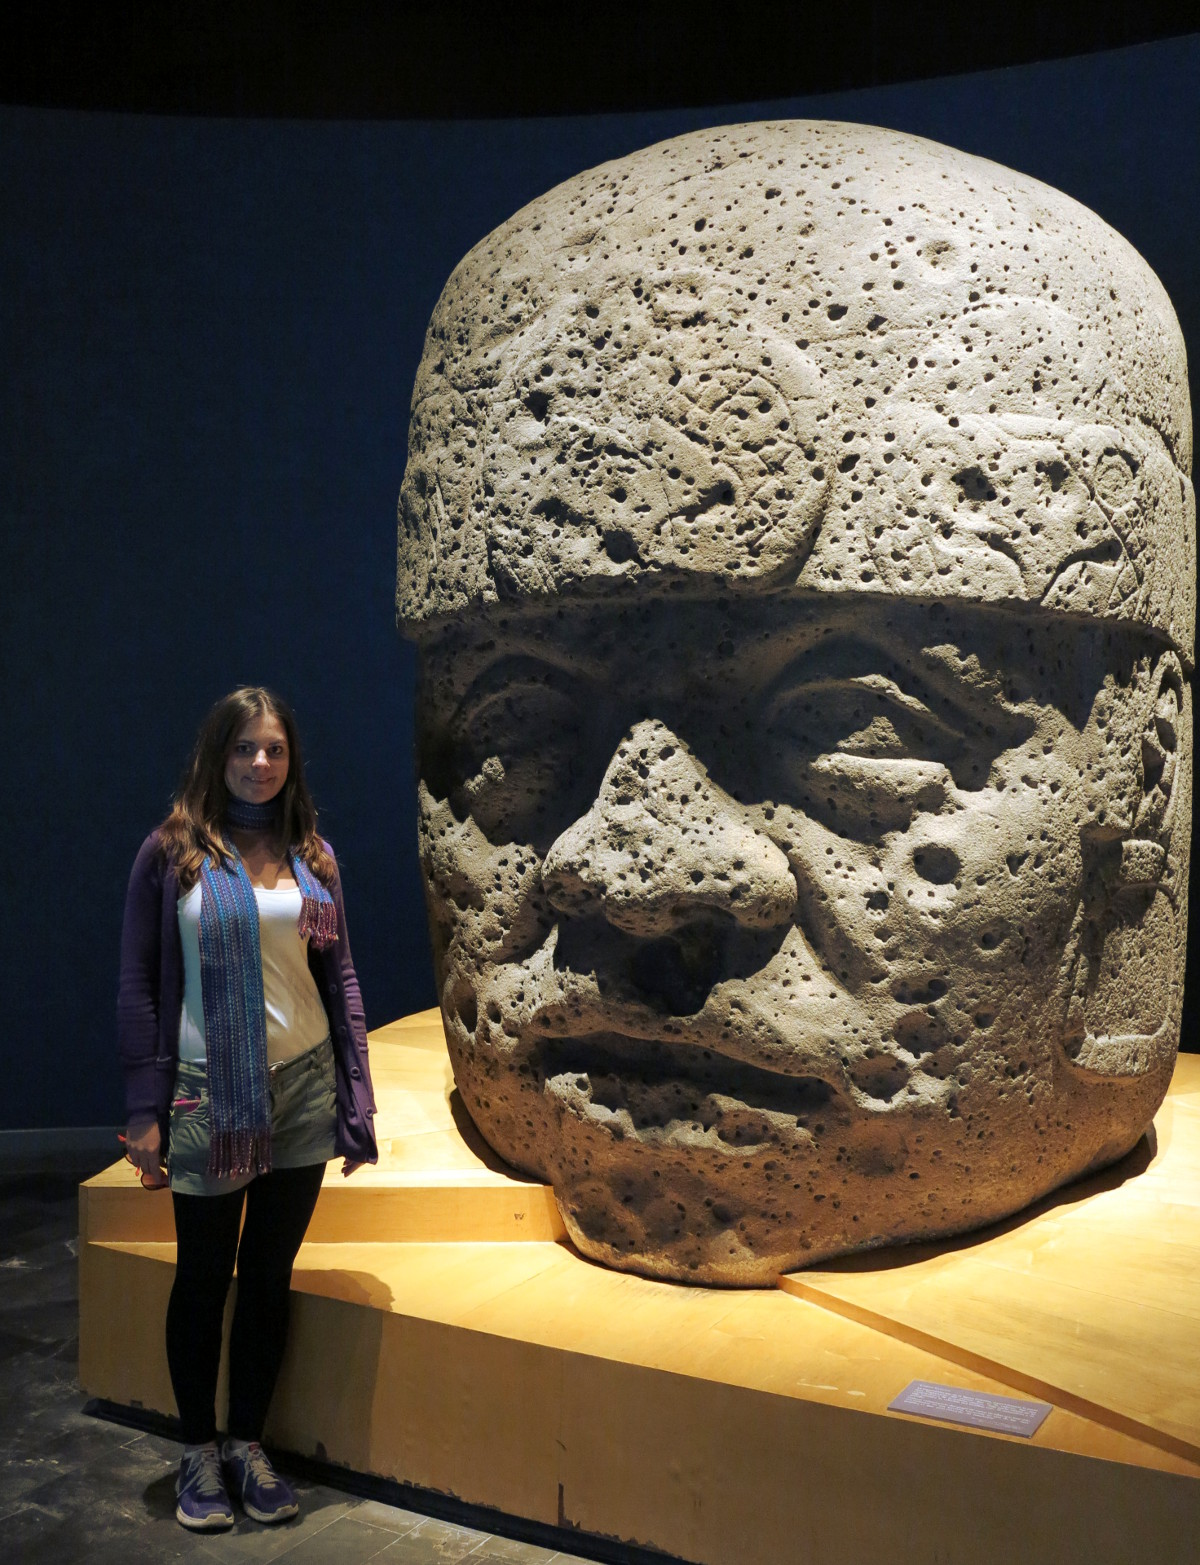 stone head anthropology museum Mexico City Double-Barrelled Travel